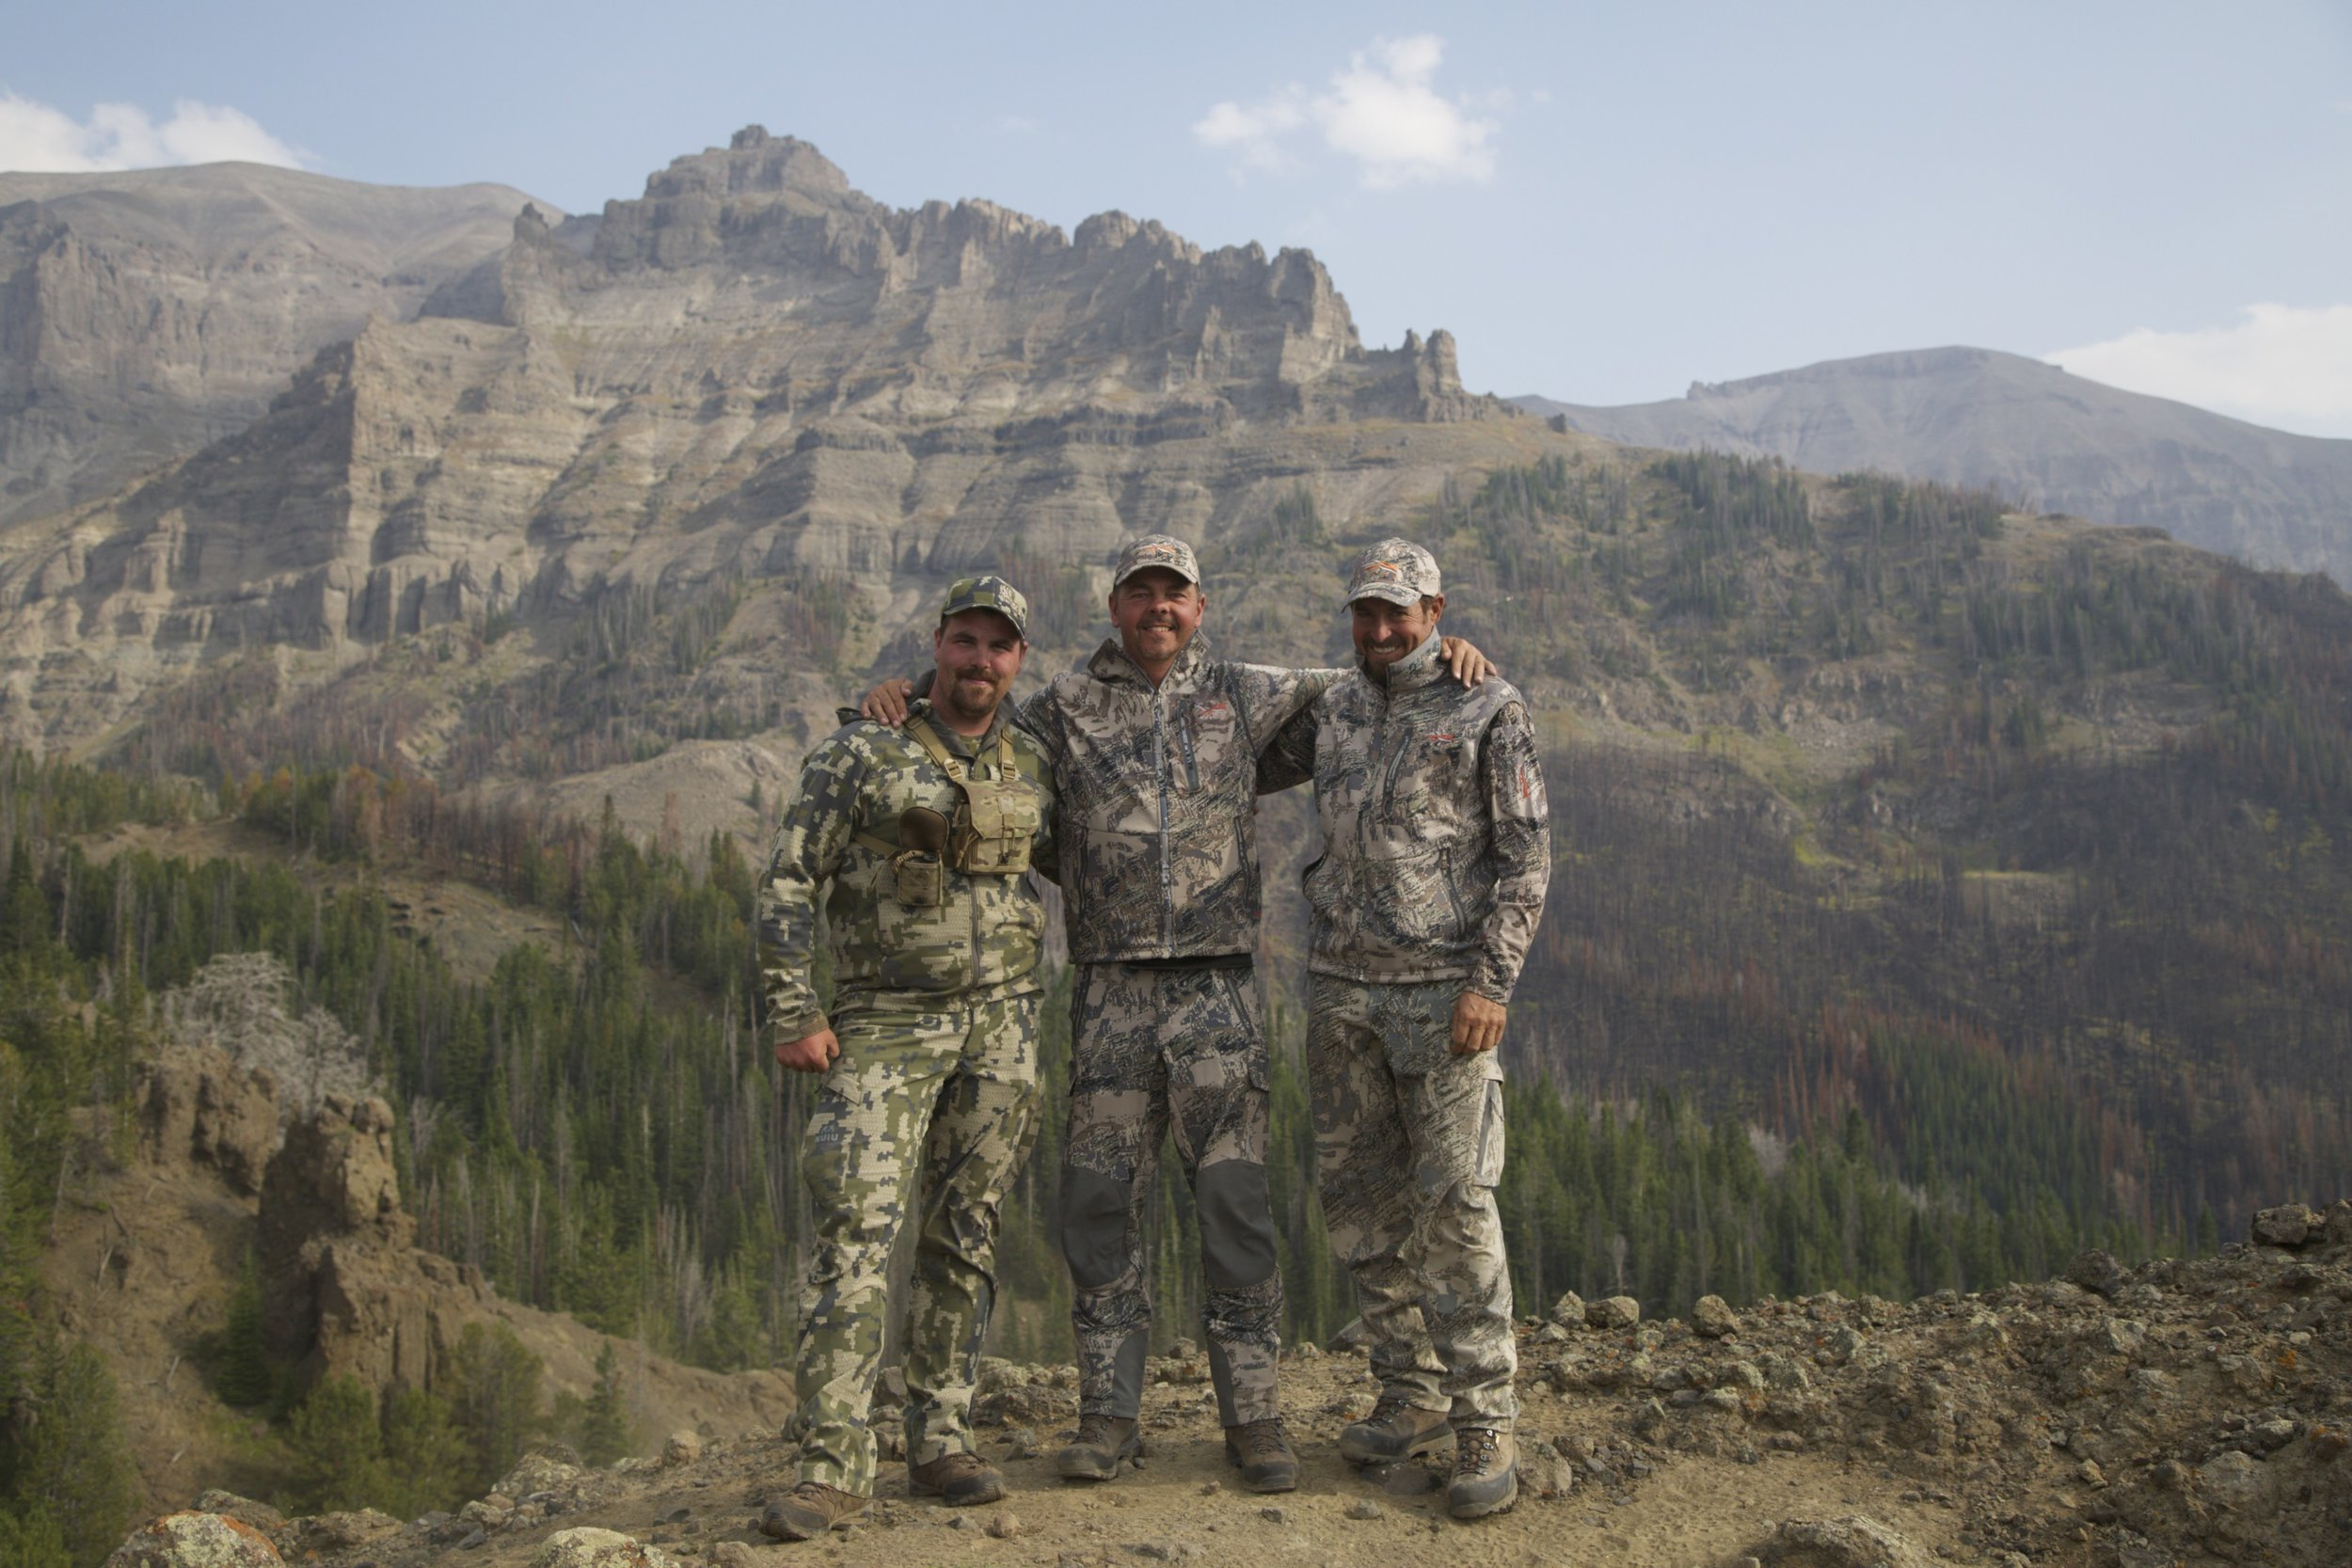 Tyler Ferris, Ron Nizolek, and Renowned Sheep Guide Chris Neilson on a Sheep Hunt in WY